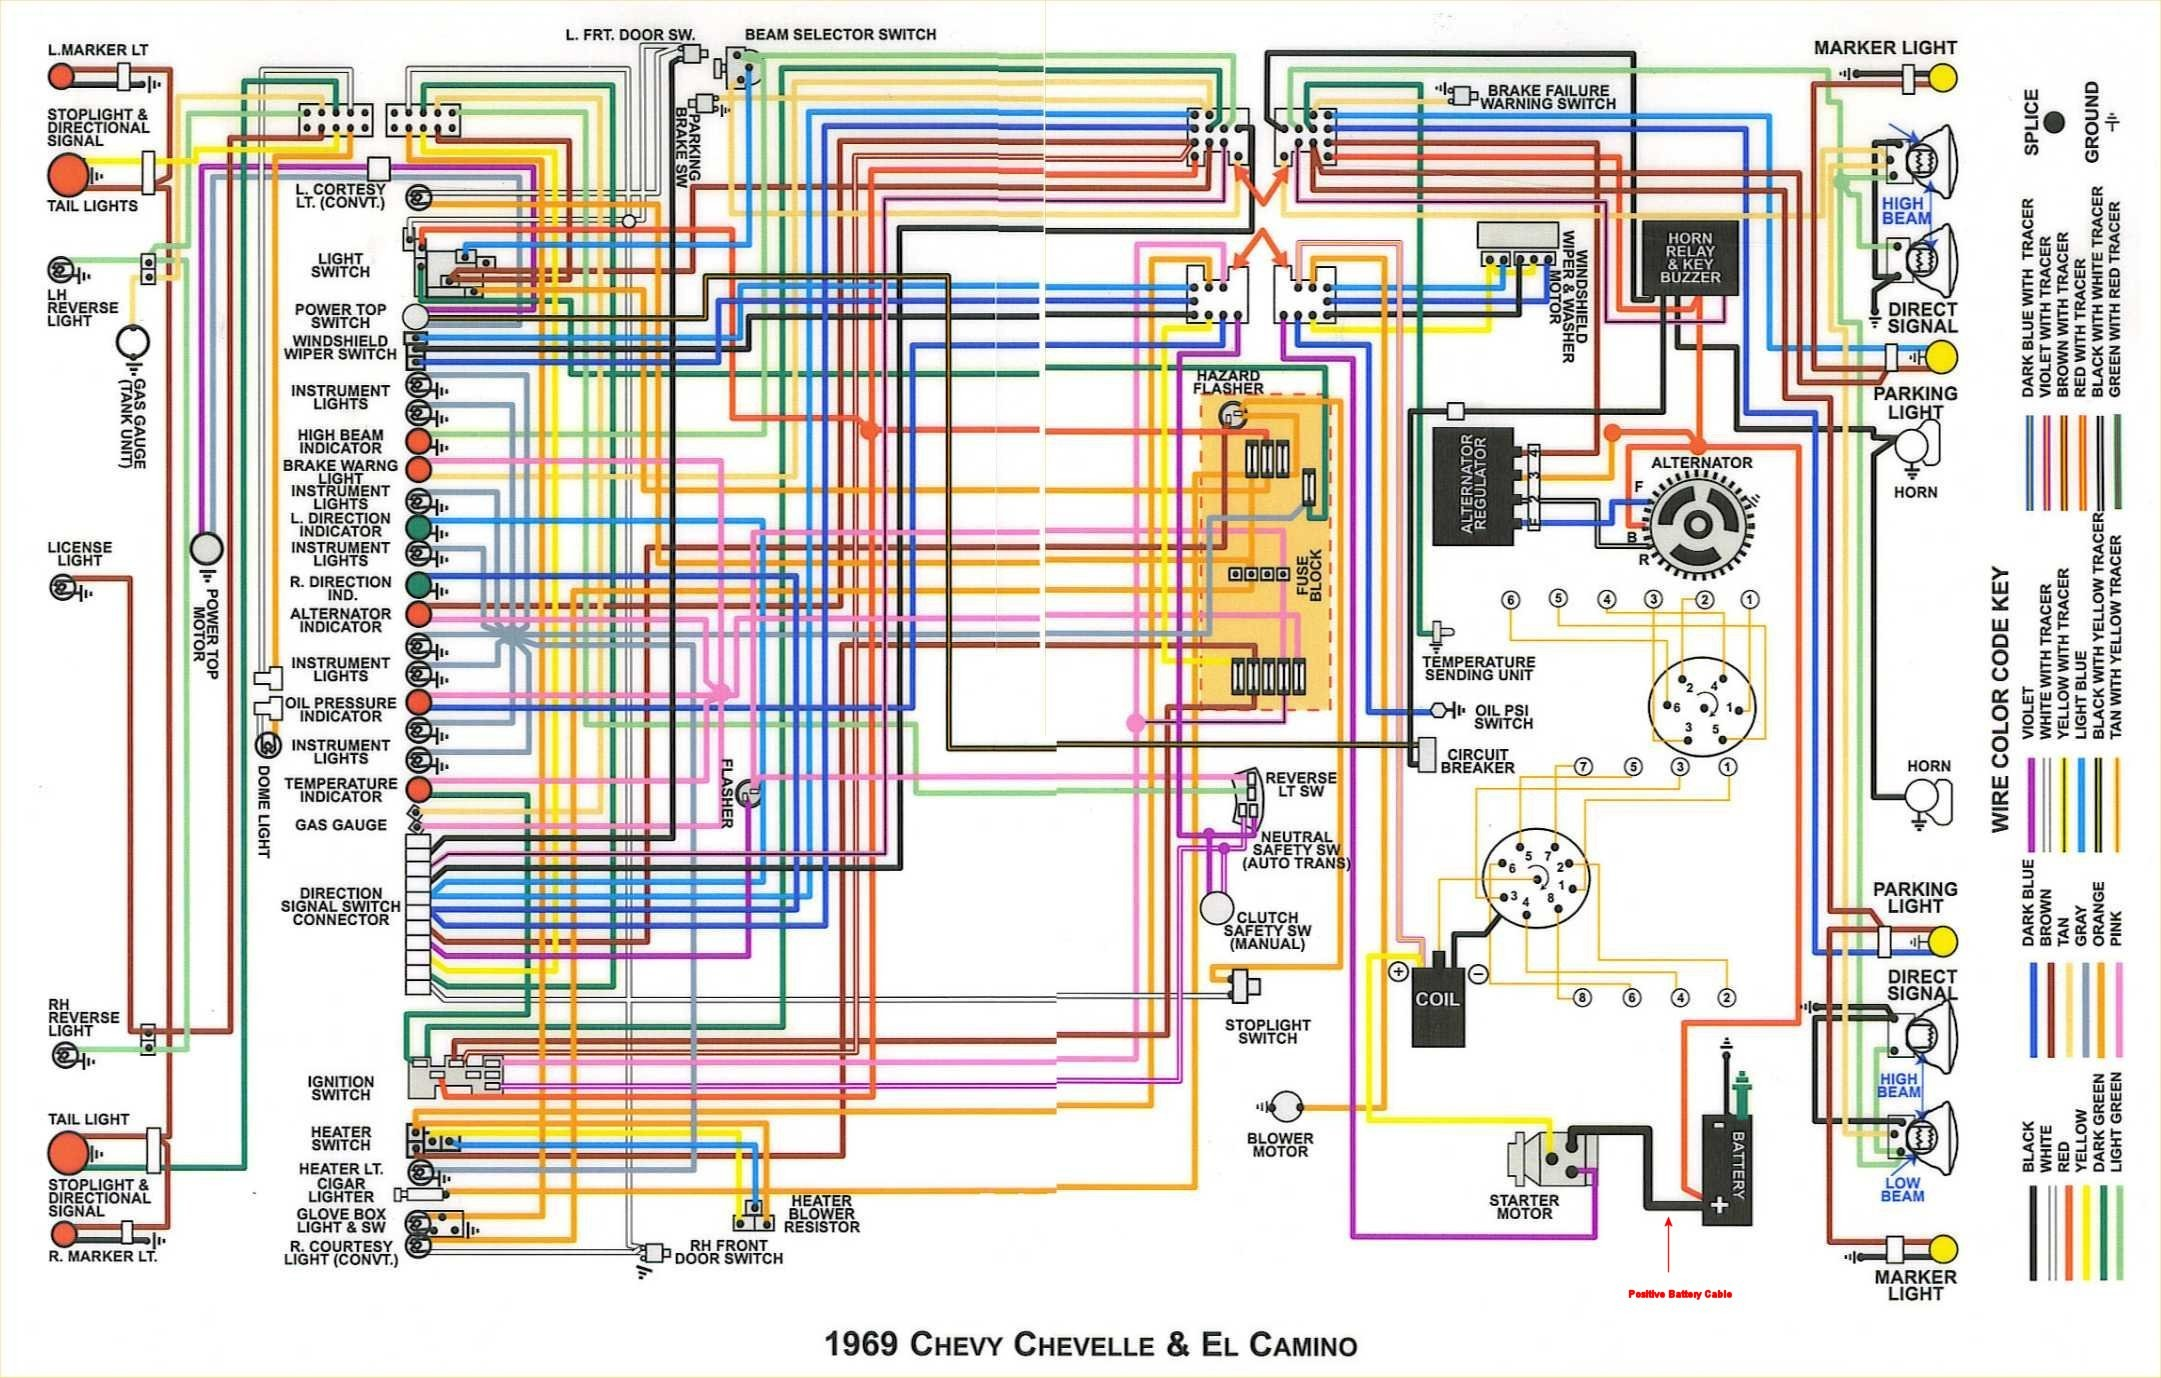 1966 el camino engine diagram schematic wiring diagram 1967 Chevrolet El Camino